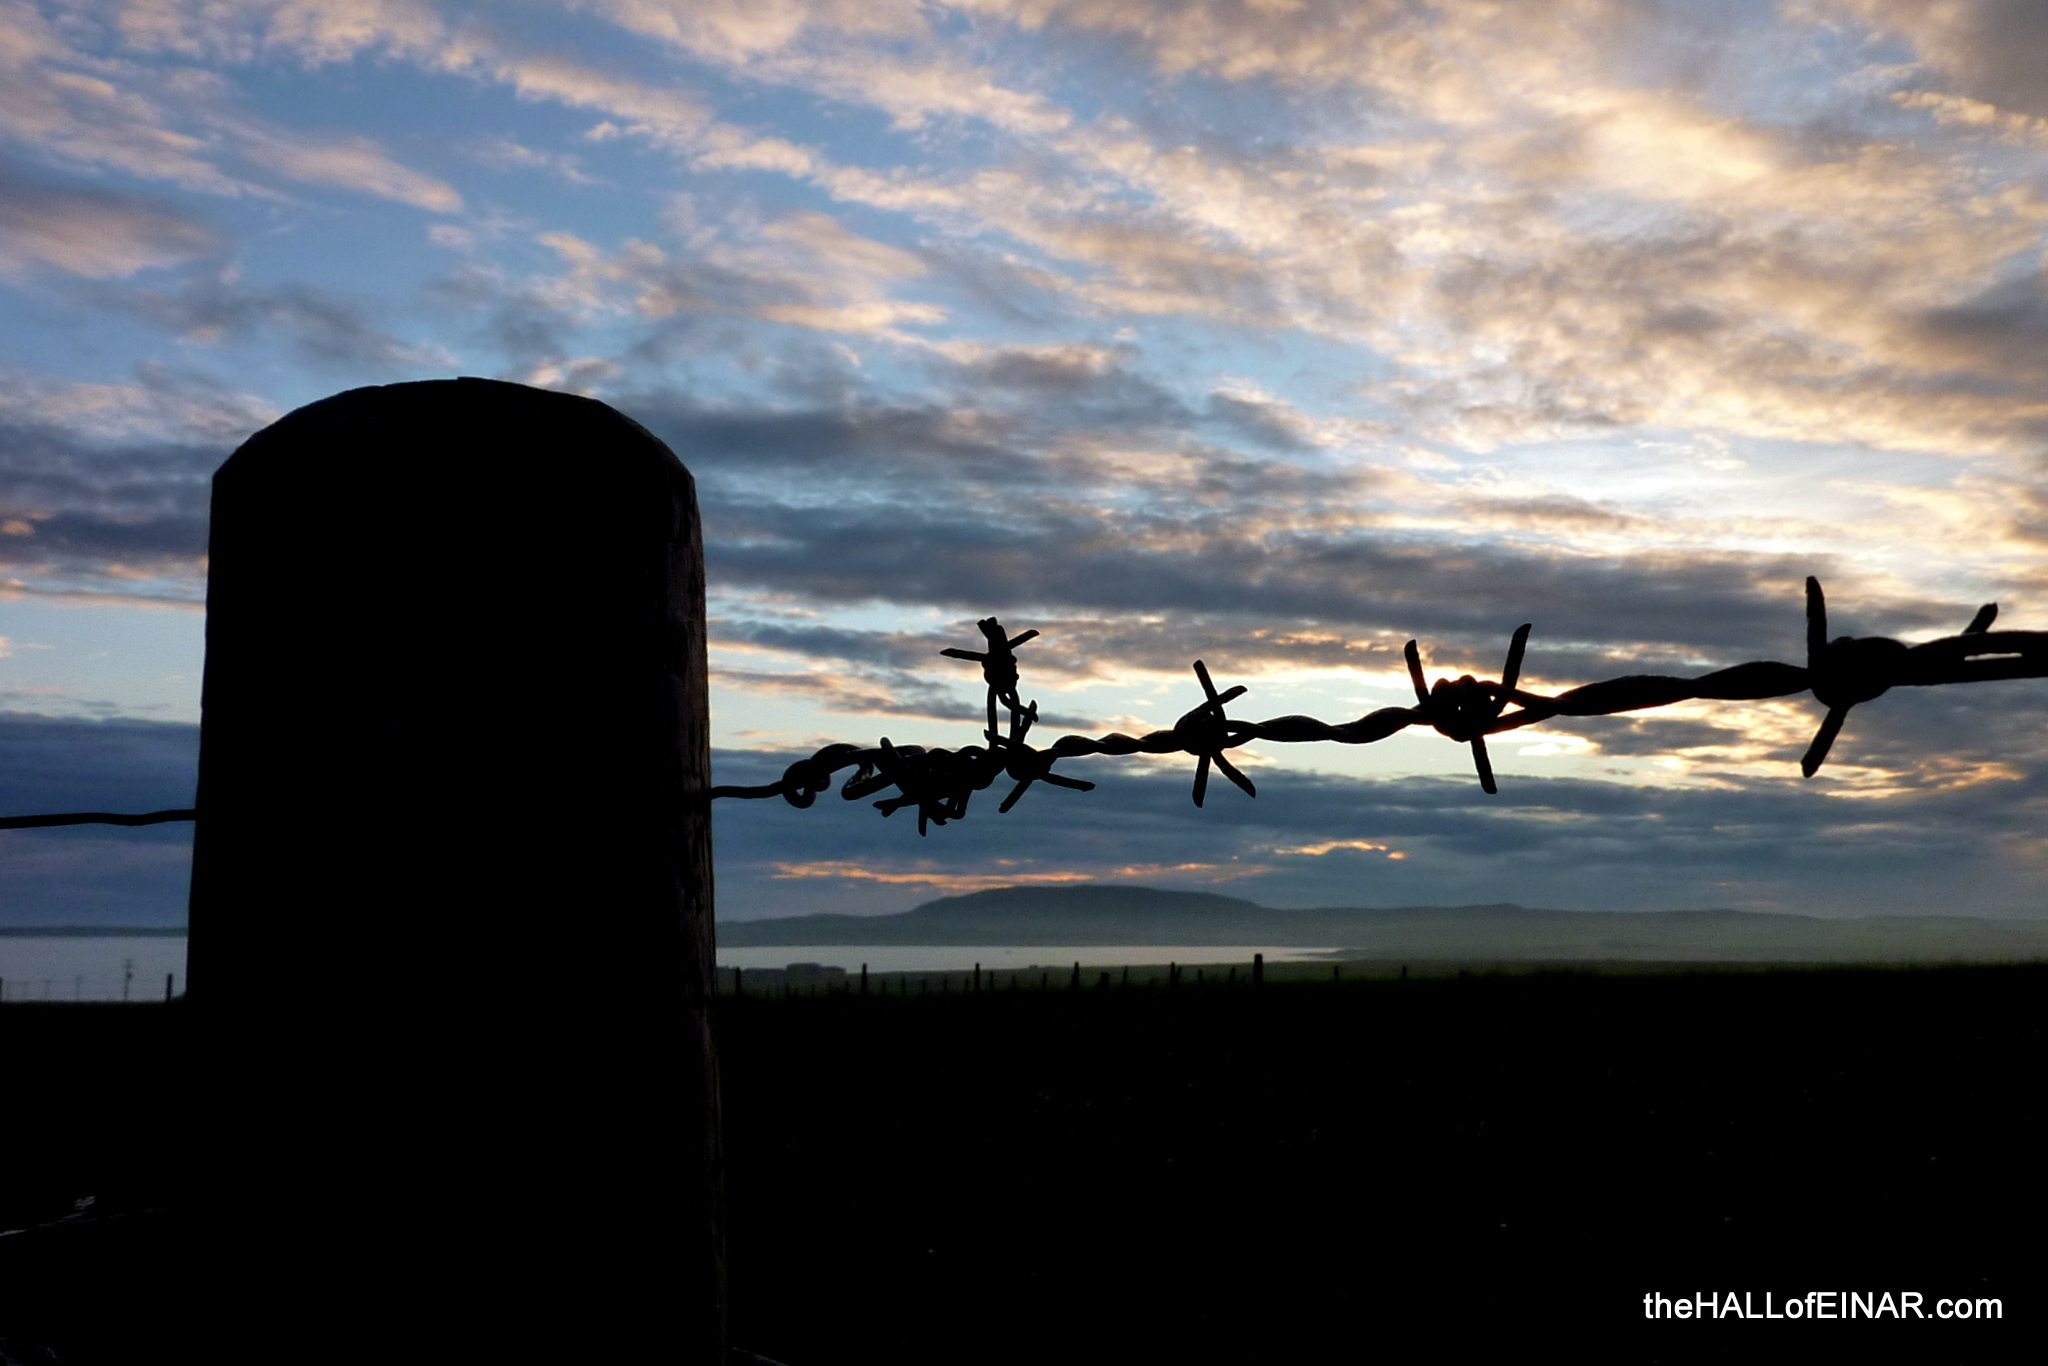 Barbed wire sunset - The Hall of Einar - photograph (c) David Bailey (not the)